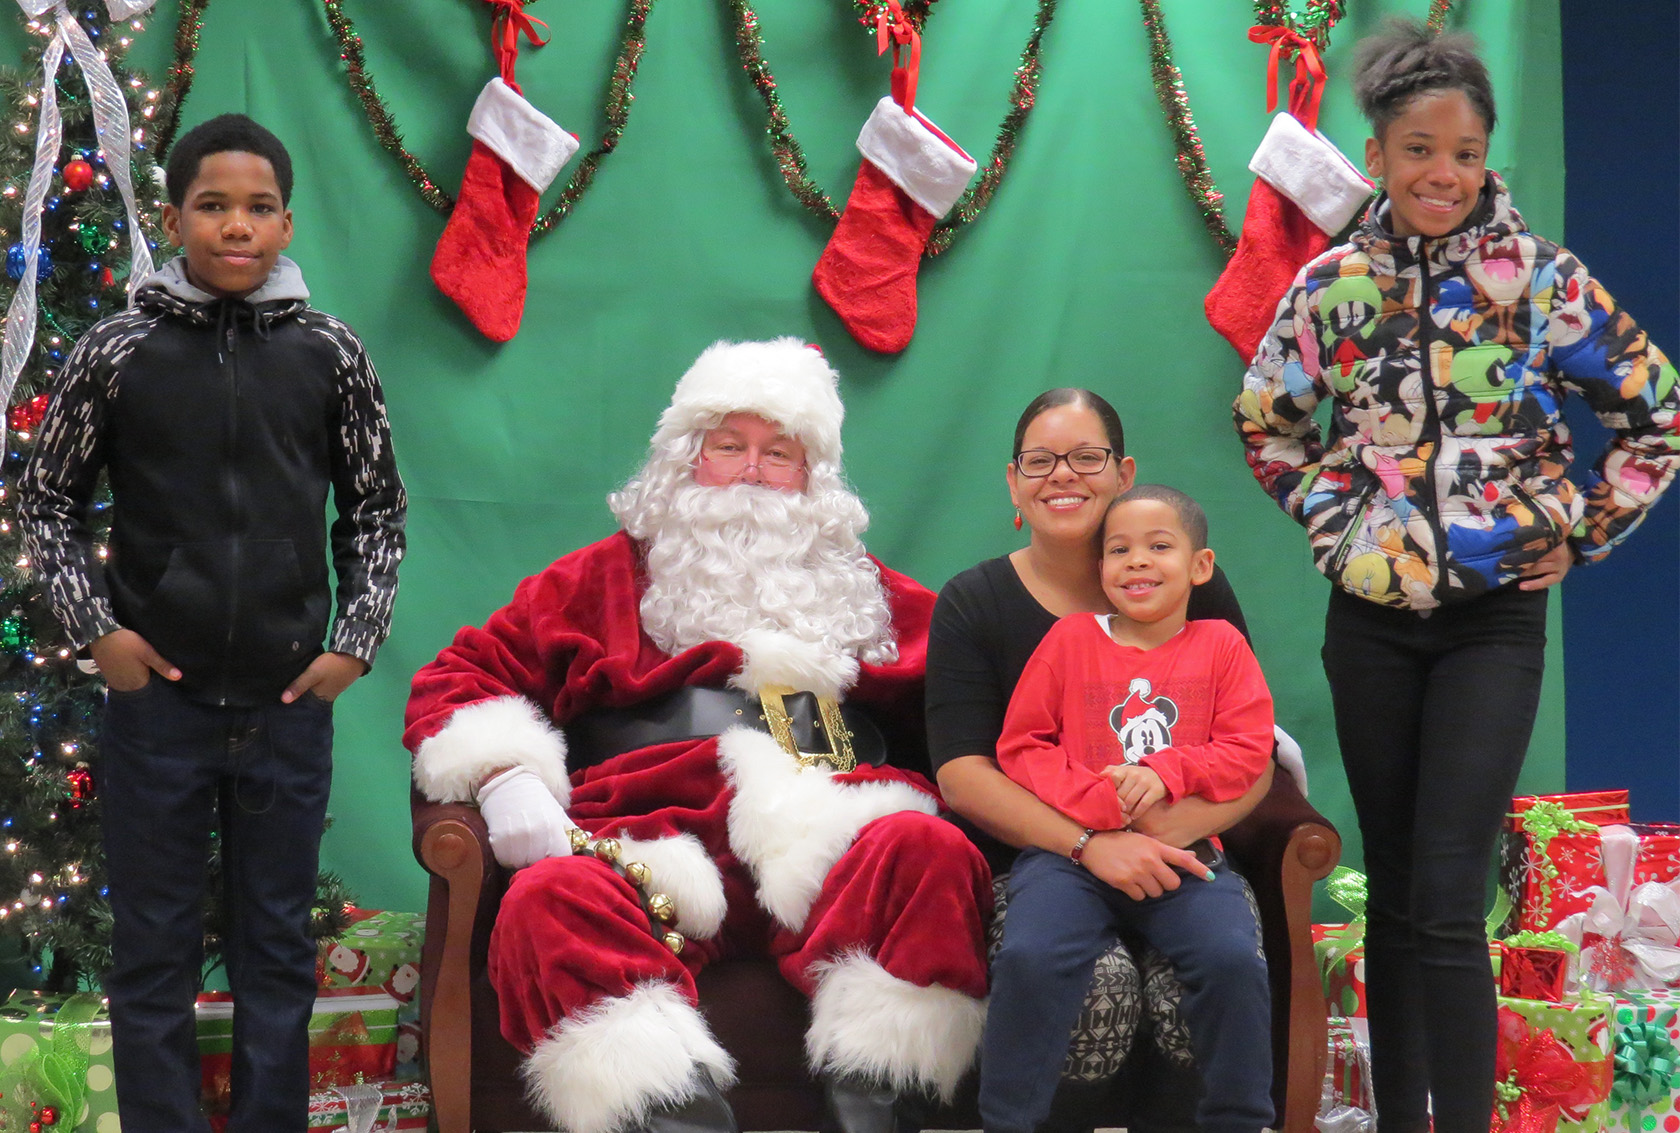 Time with Santa was important for those attending LAFCU's Breakfast with Santa.